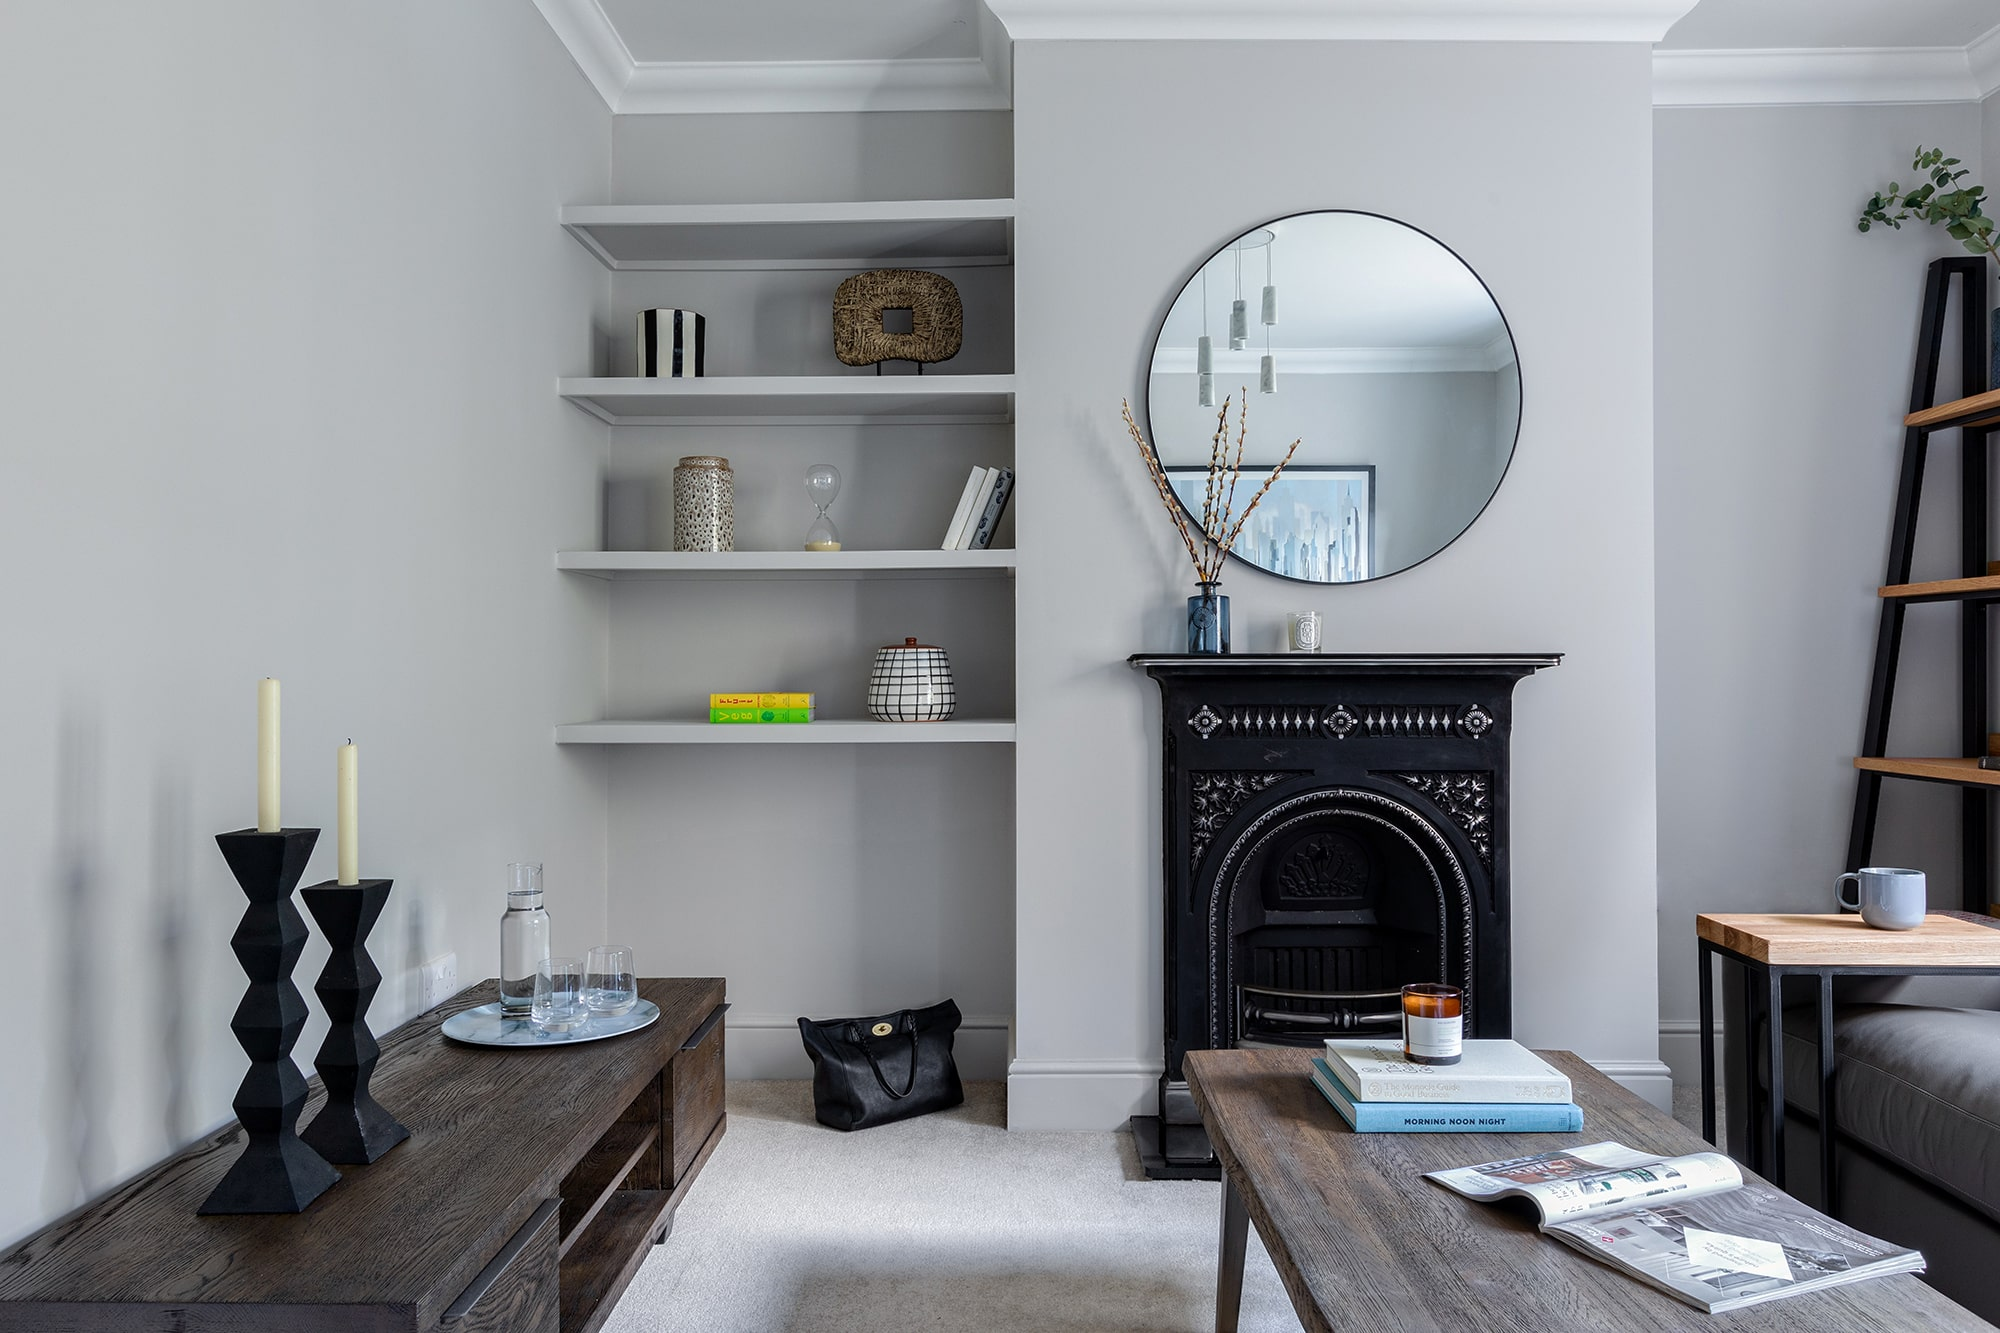 interior design photo: living room with grey walls; built in shelves; black fireplace; round mirror; wooden coffee table; tv stand